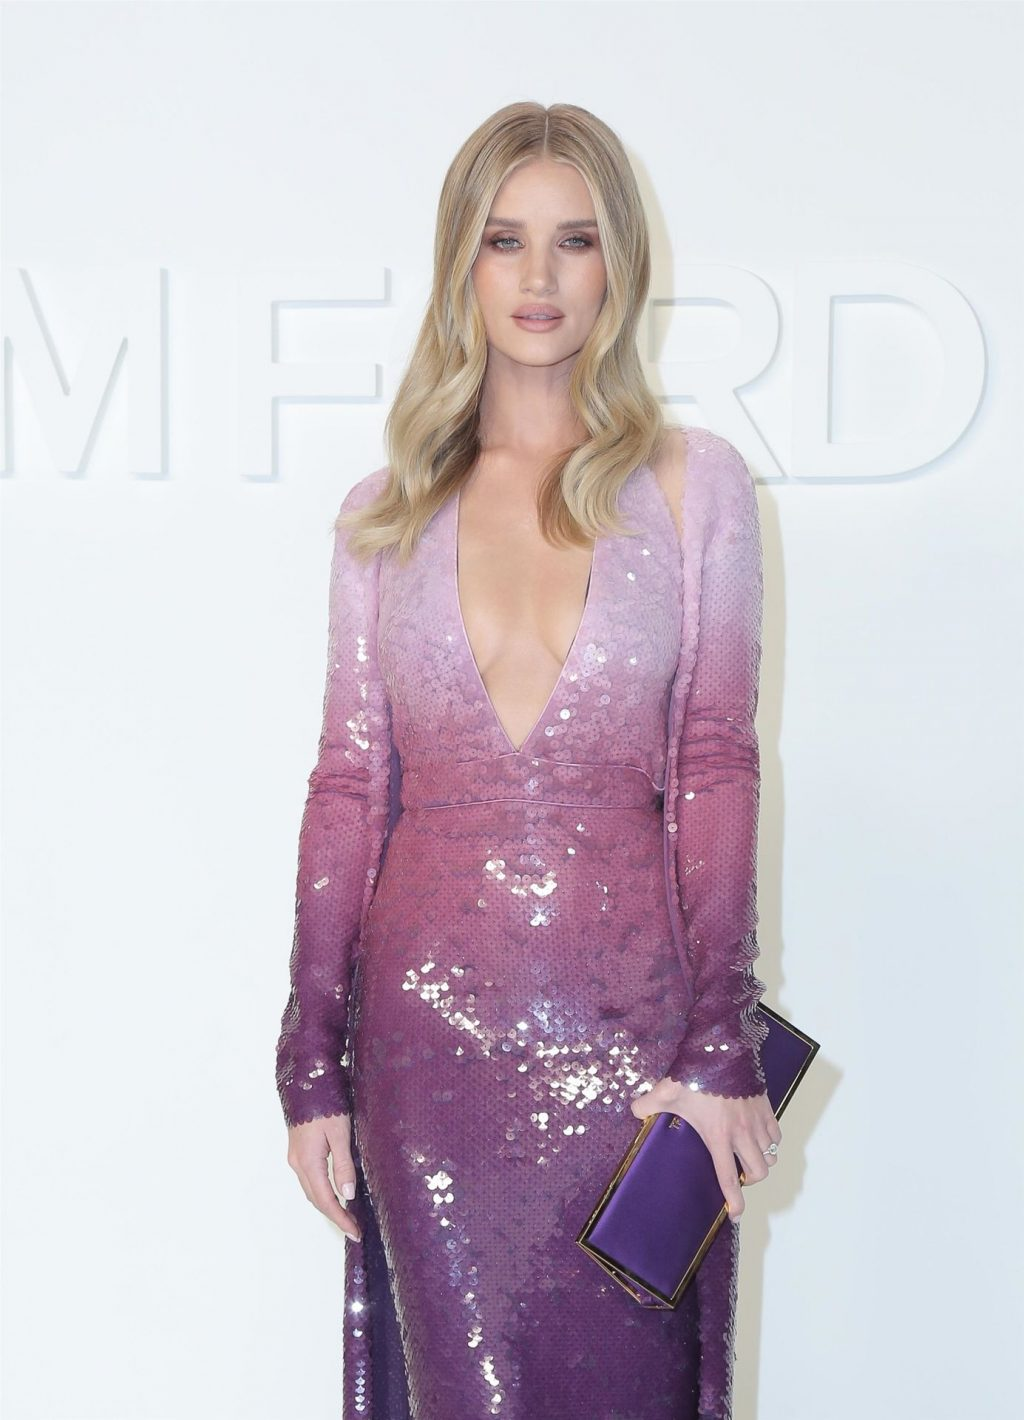 Rosie Huntington-Whiteley Shows Her Cleavage at the Tom Ford Fashion Show (115 Photos)